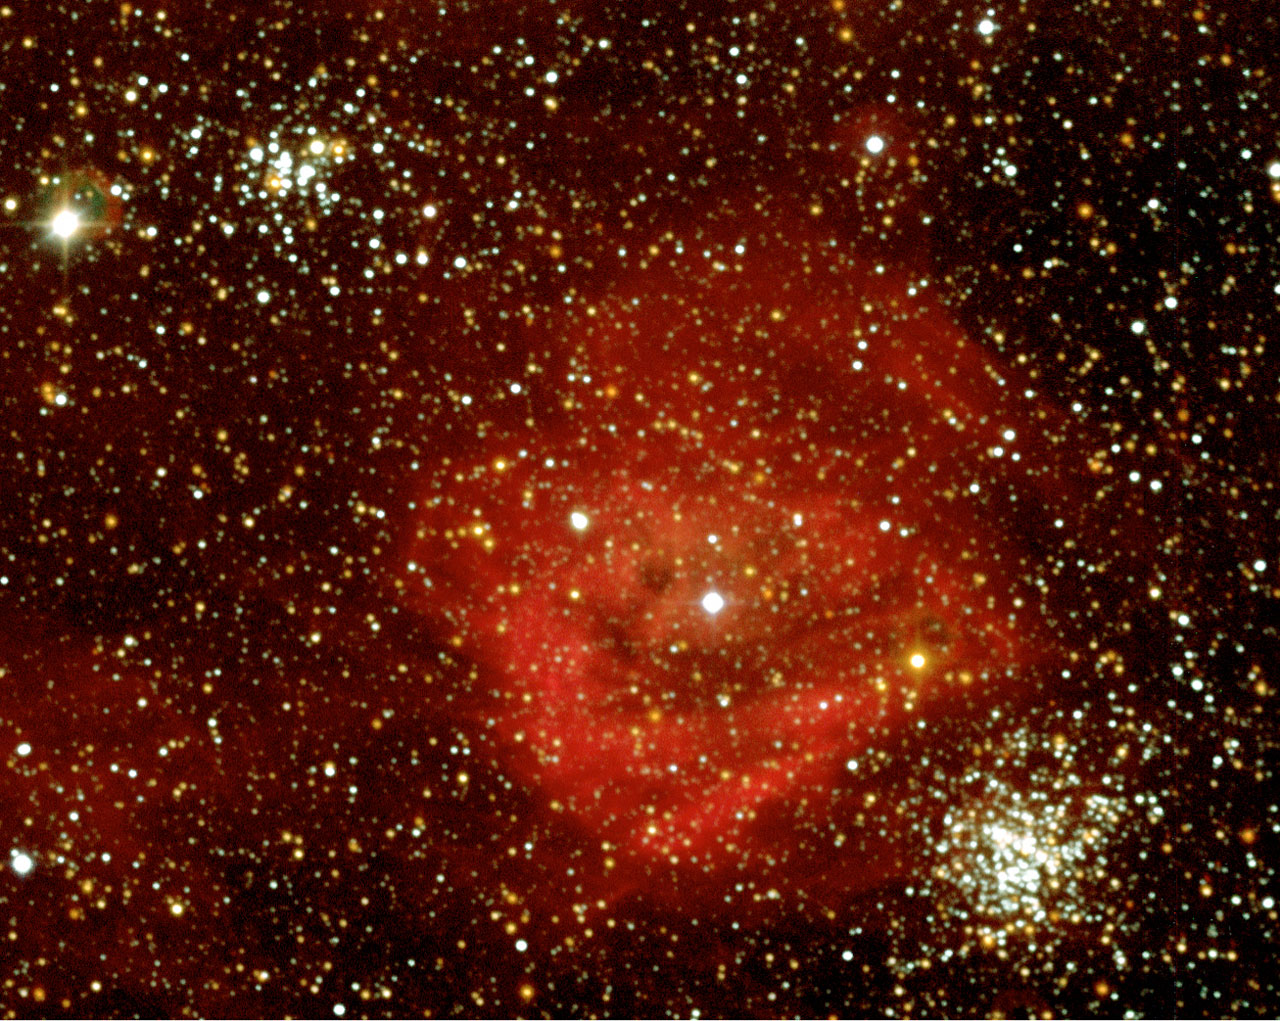 DEM L 159 Nebula and KMHK 840 and 831 Starclusters in the LMC